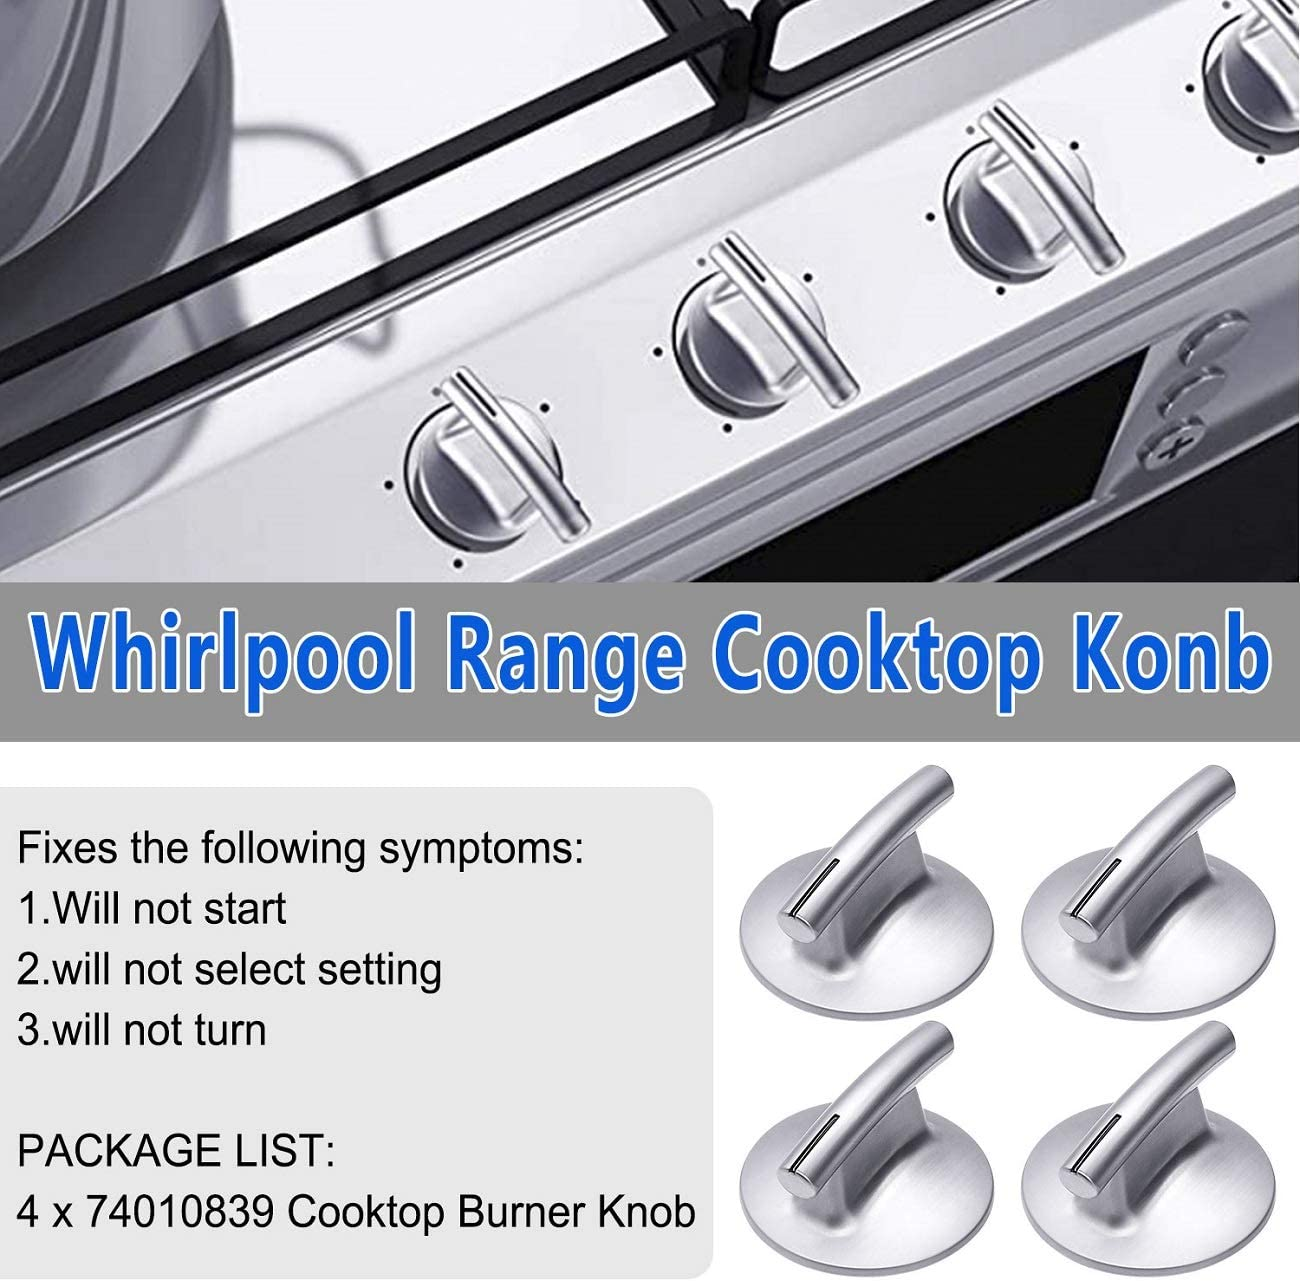 WP74010839VP Upgraded PS11744413 74010839 Cooktop Burner Knob Compatible with Whirlpool Range,4 Pack Replacement Part for 7737P372-60